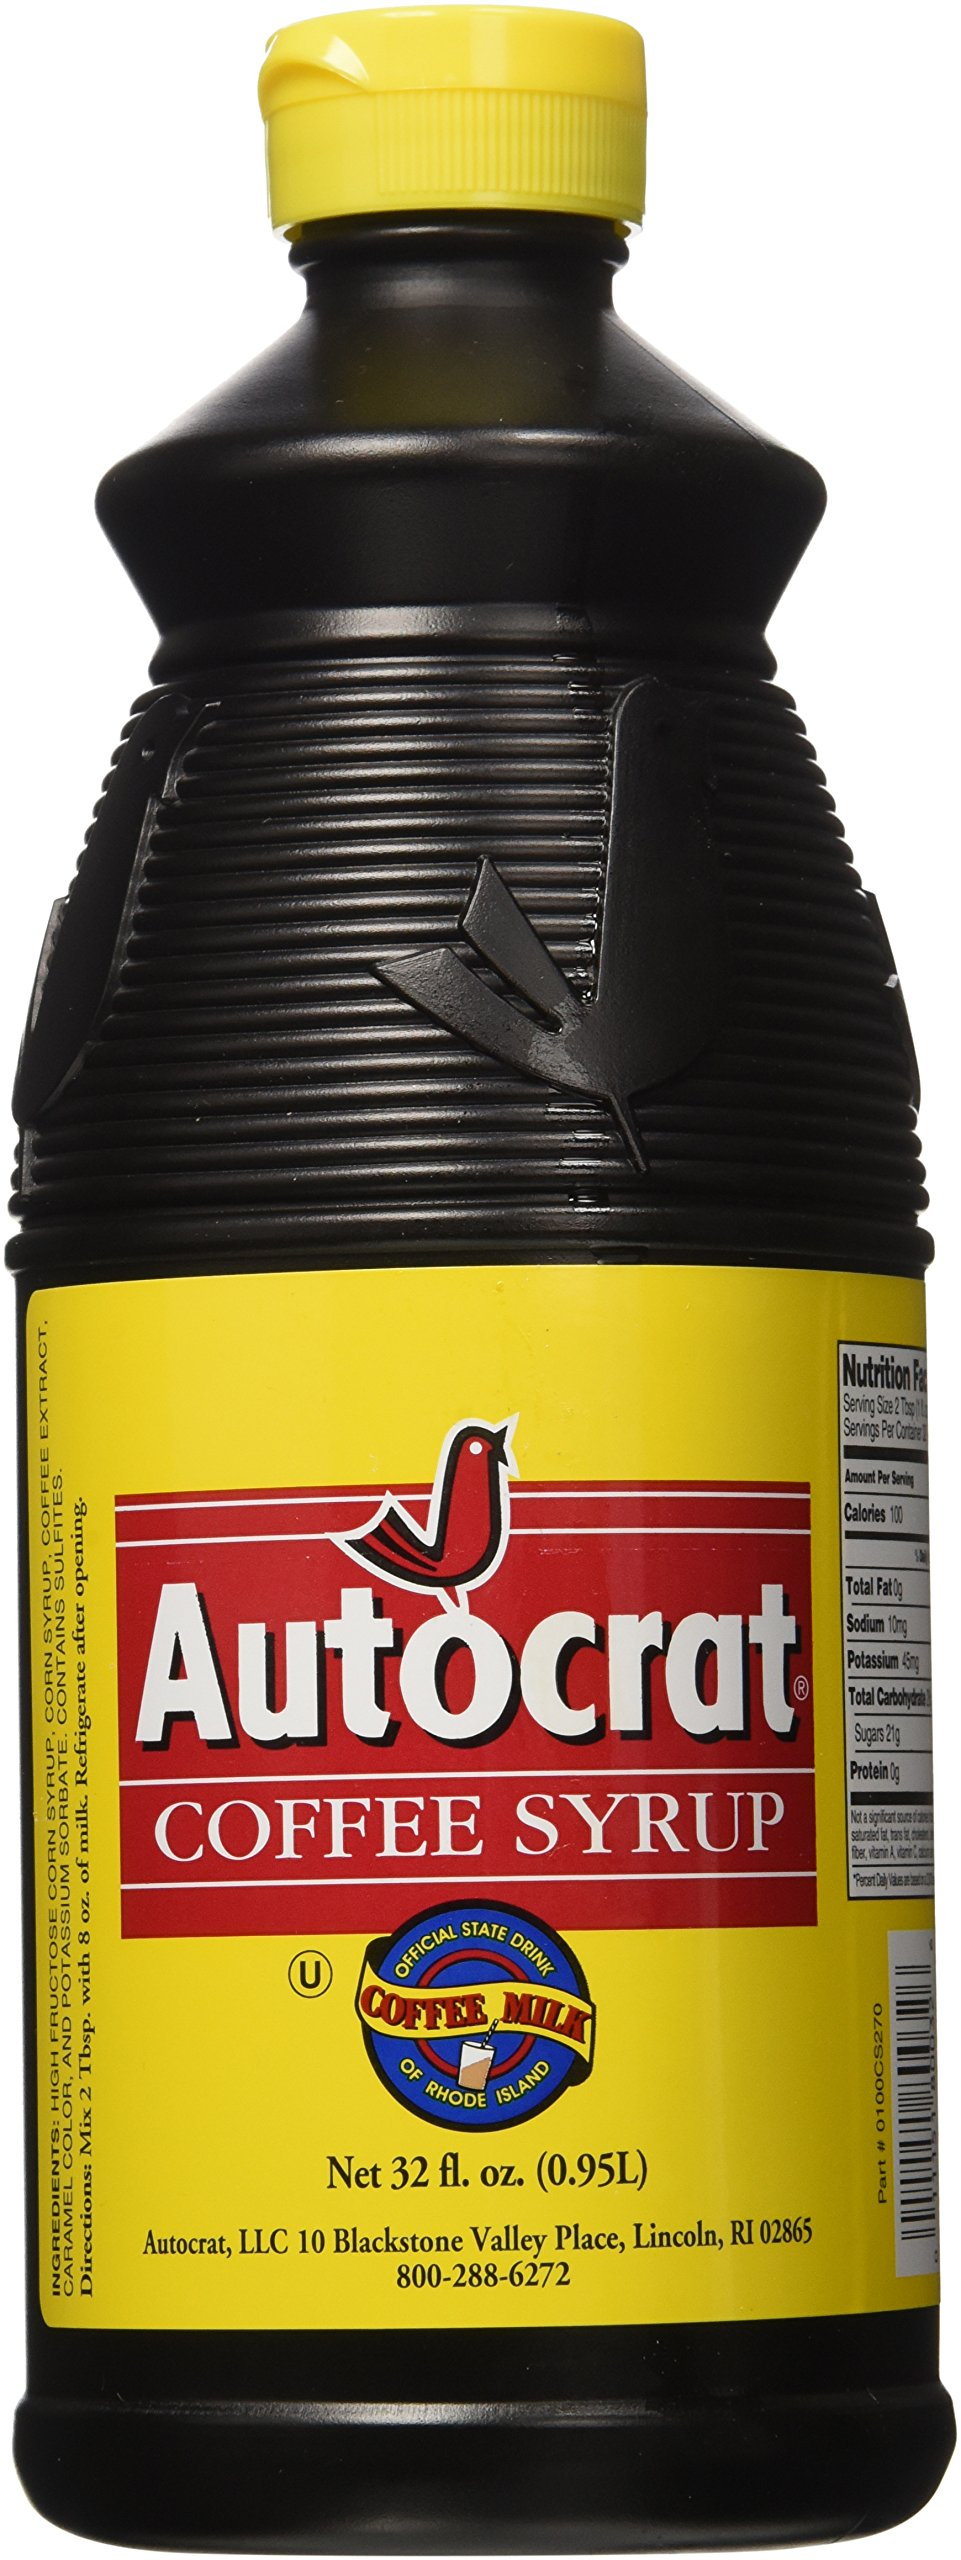 Autocrat Coffee Syrup Free Shipping